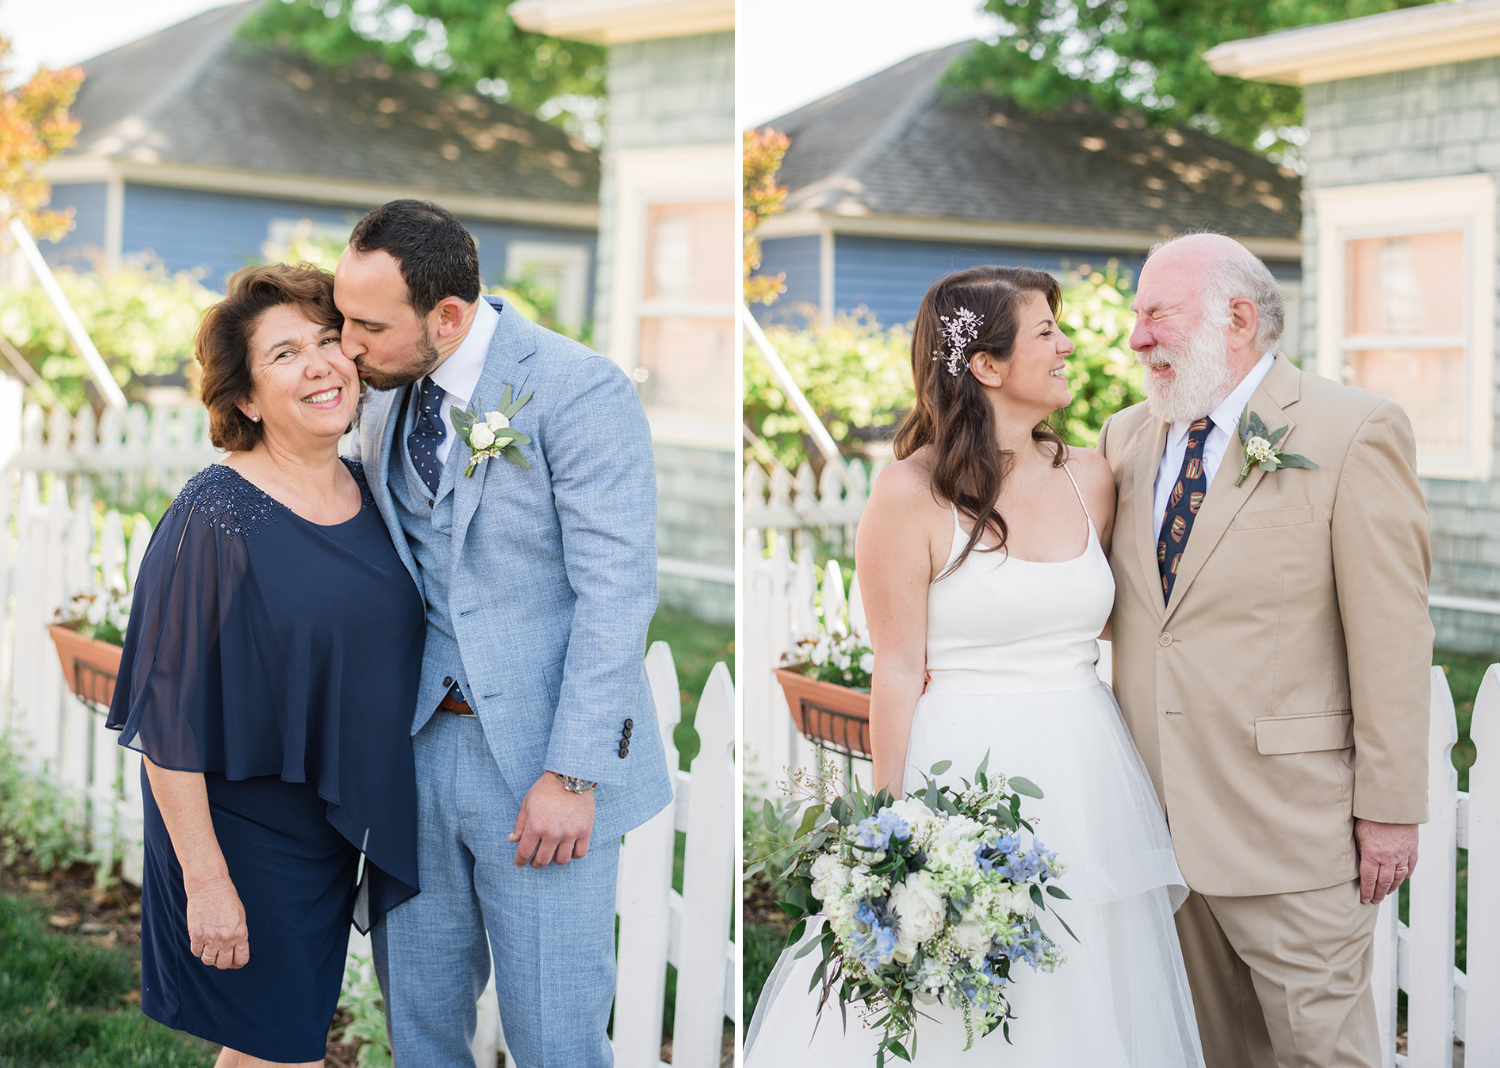 bride shares a hug with her dad and groom kisses his mom on the cheek